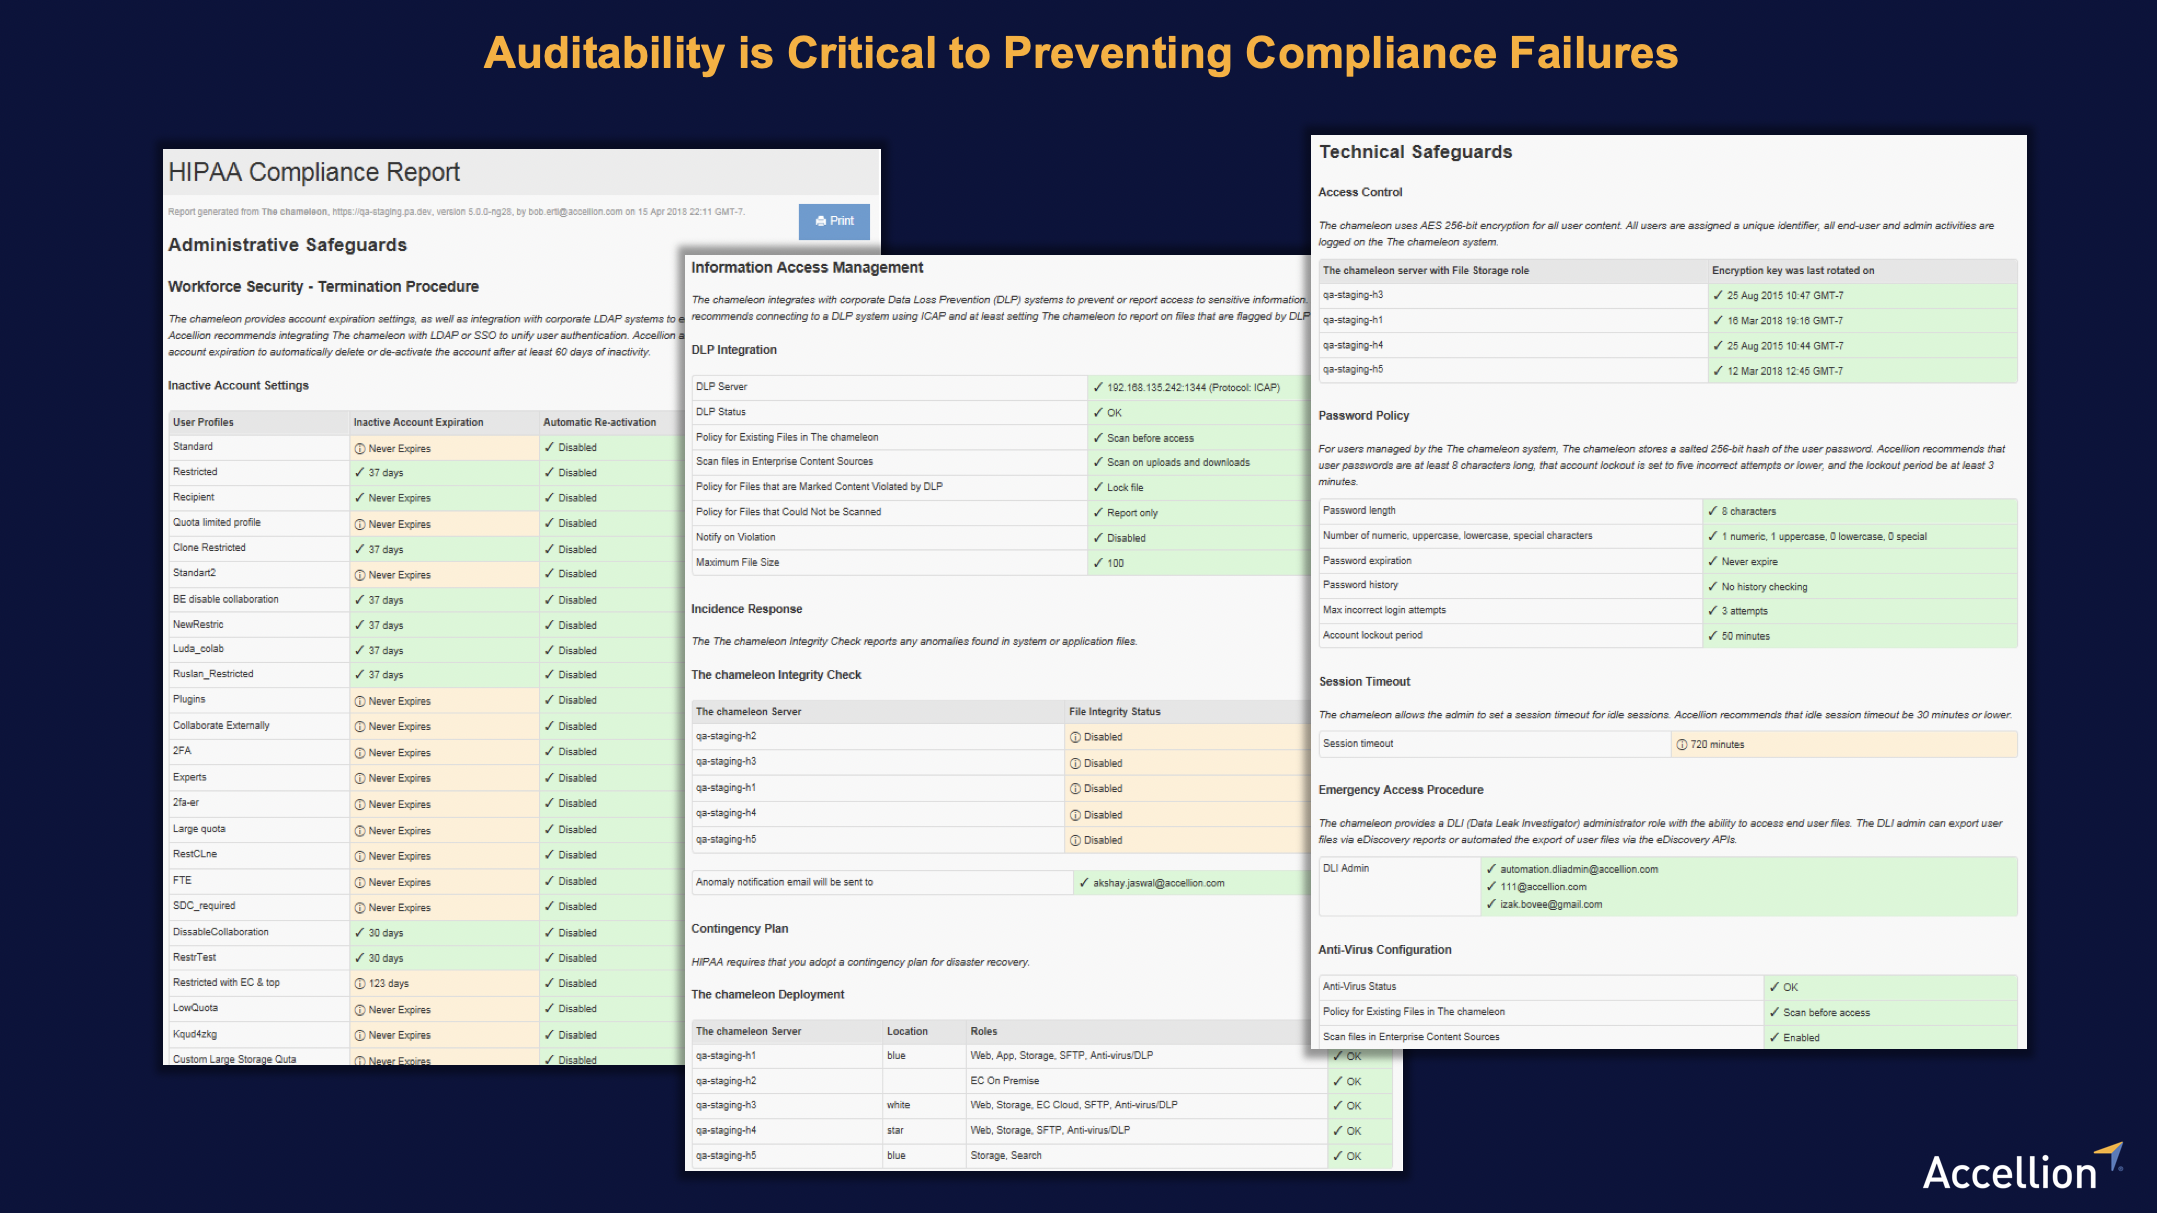 Auditability is Critical to Preventing Compliance Failures